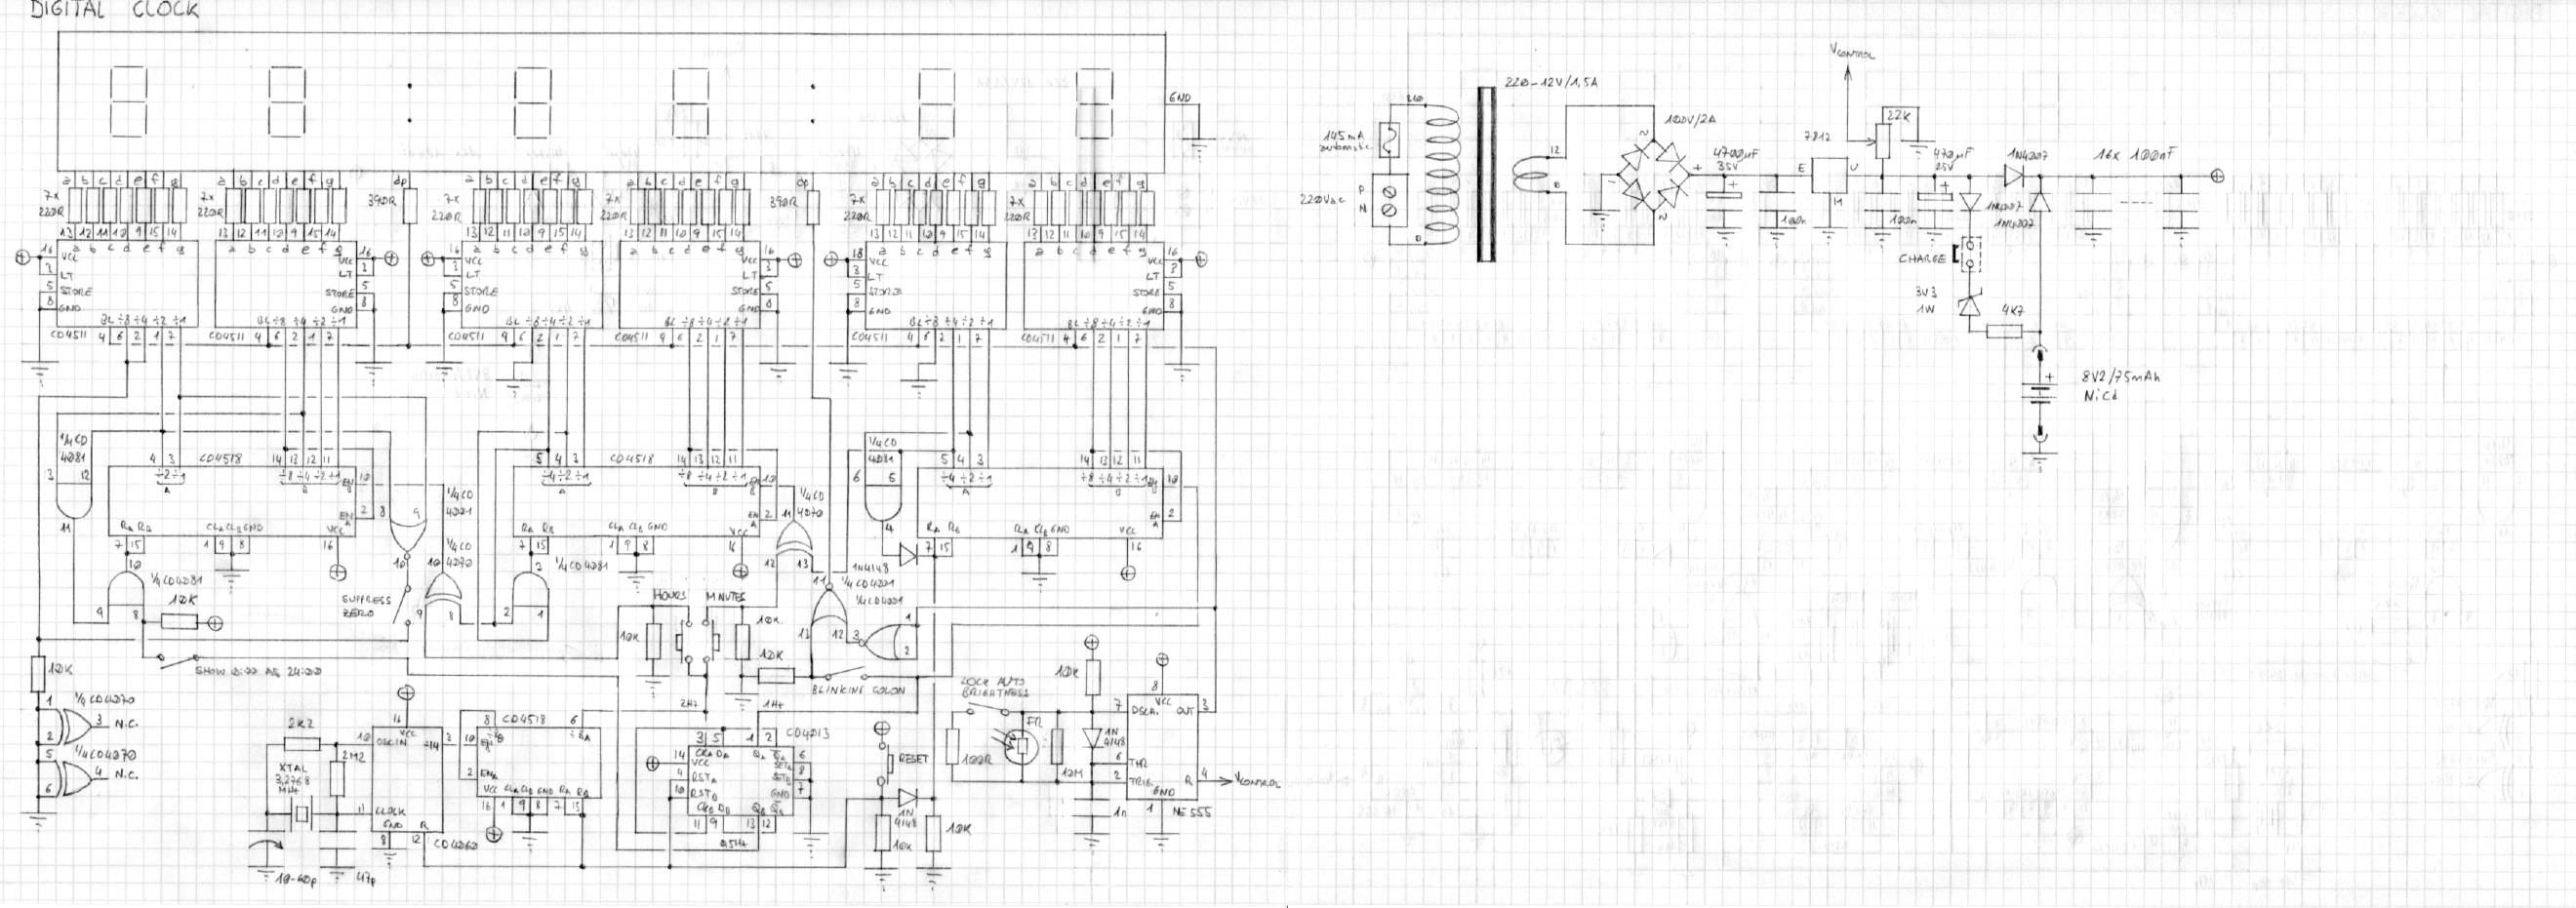 logic diagram of a 12 hour digital clock  u2013 the wiring